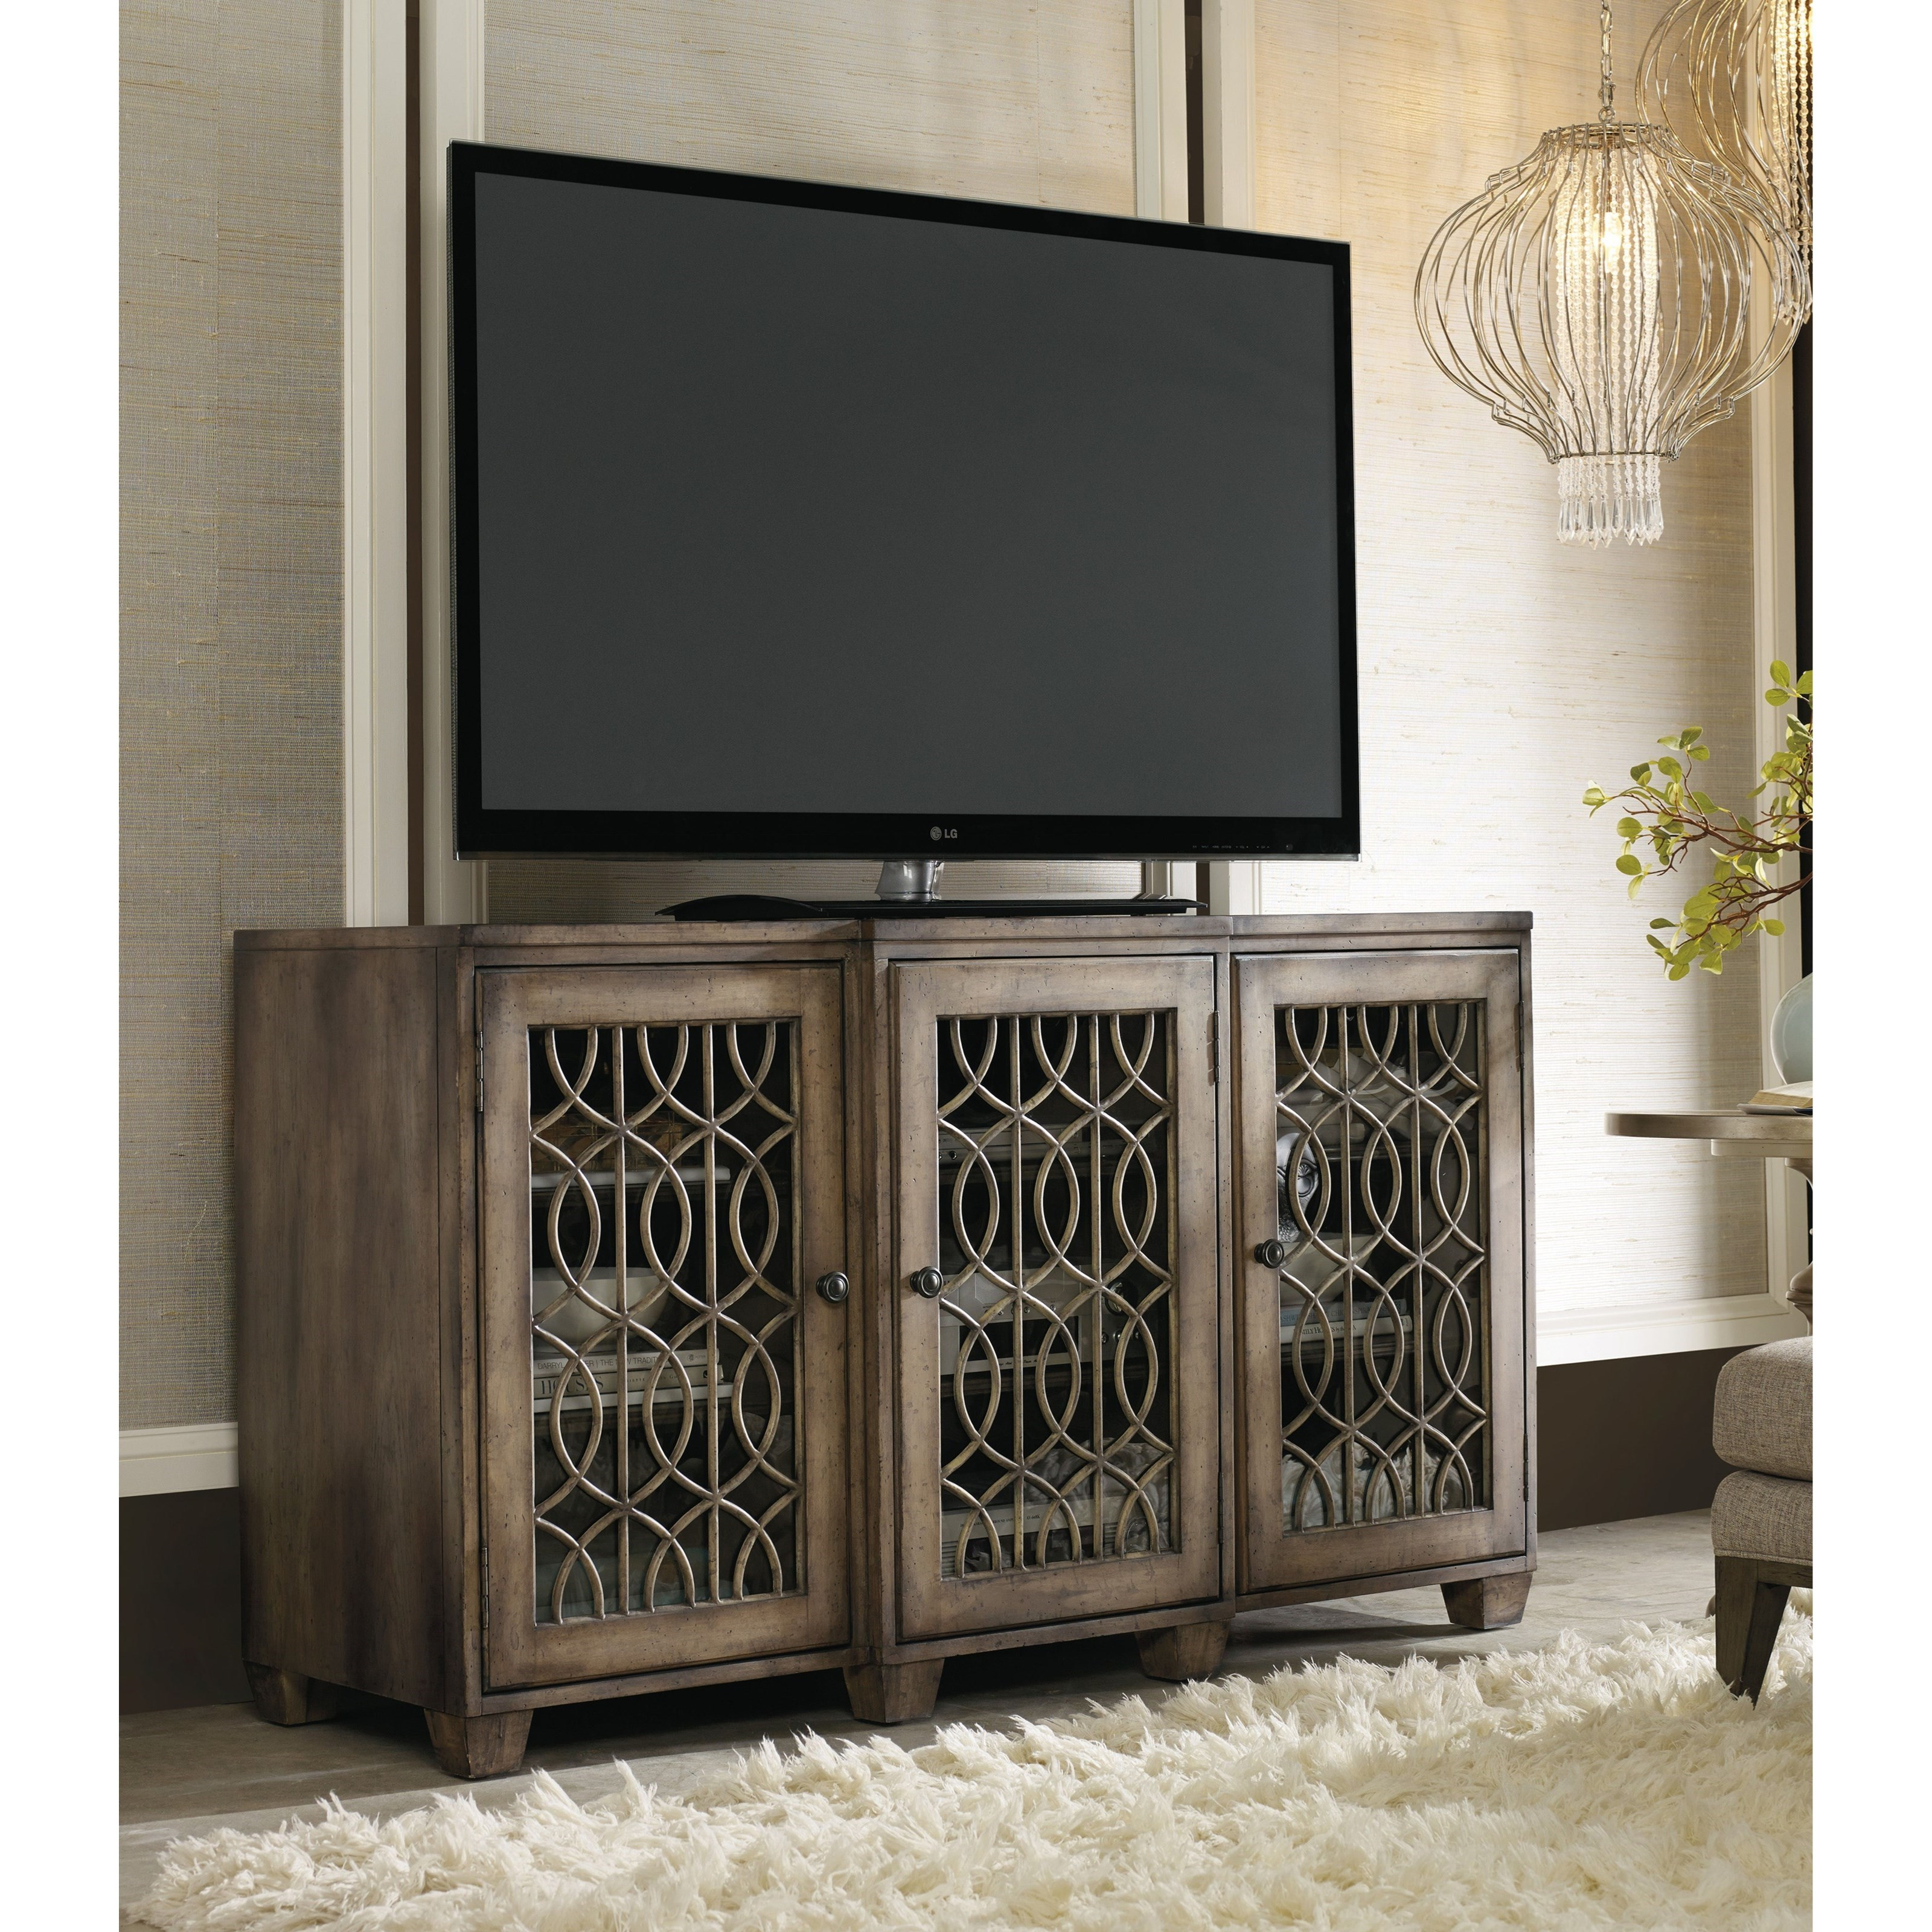 Ignore 64in. Entertainment Console by Hooker Furniture at Stoney Creek Furniture